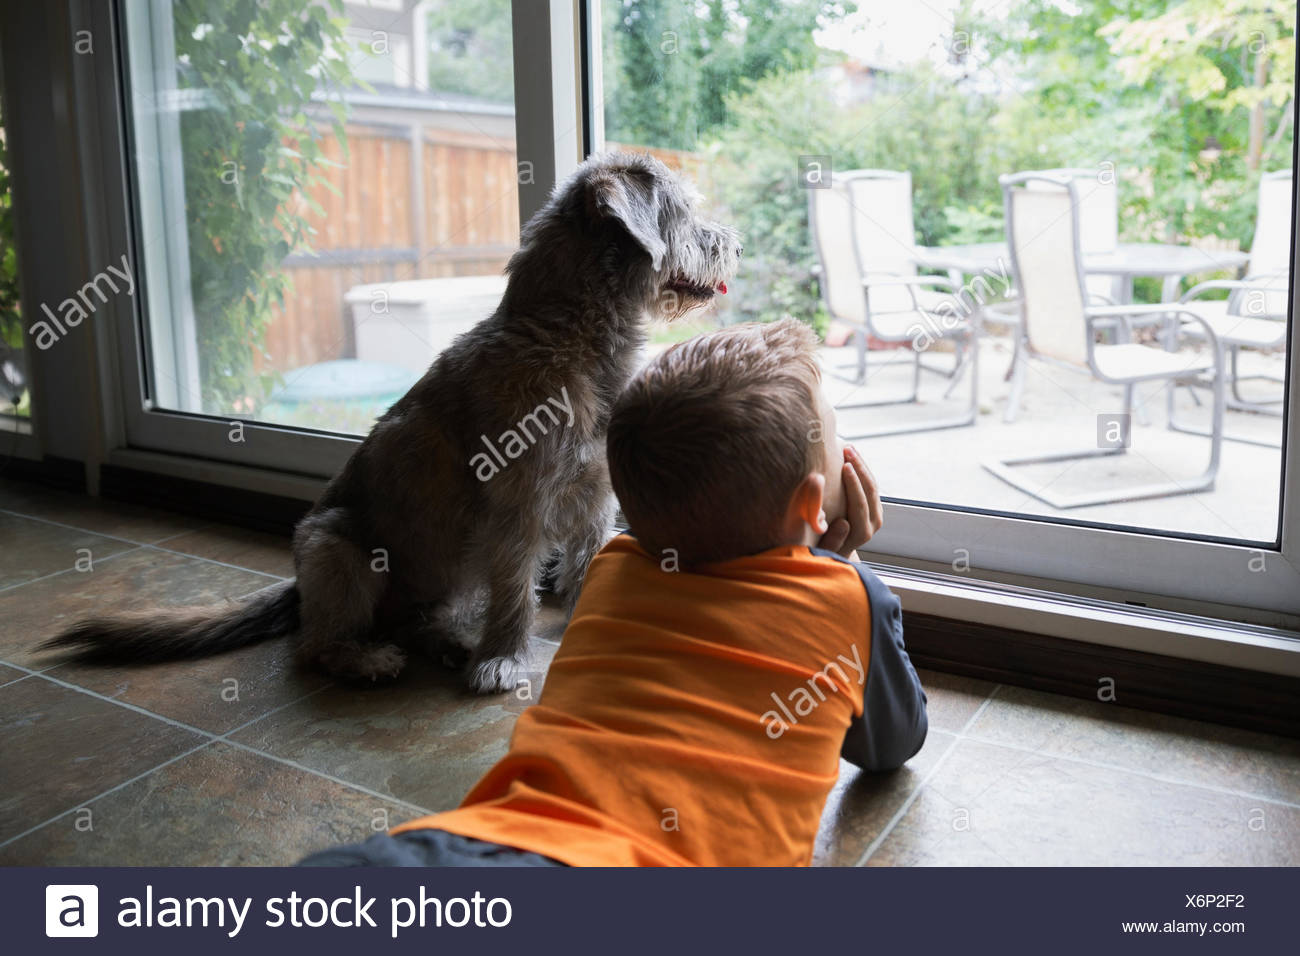 Curious boy laying at patio window with dog - Stock Image